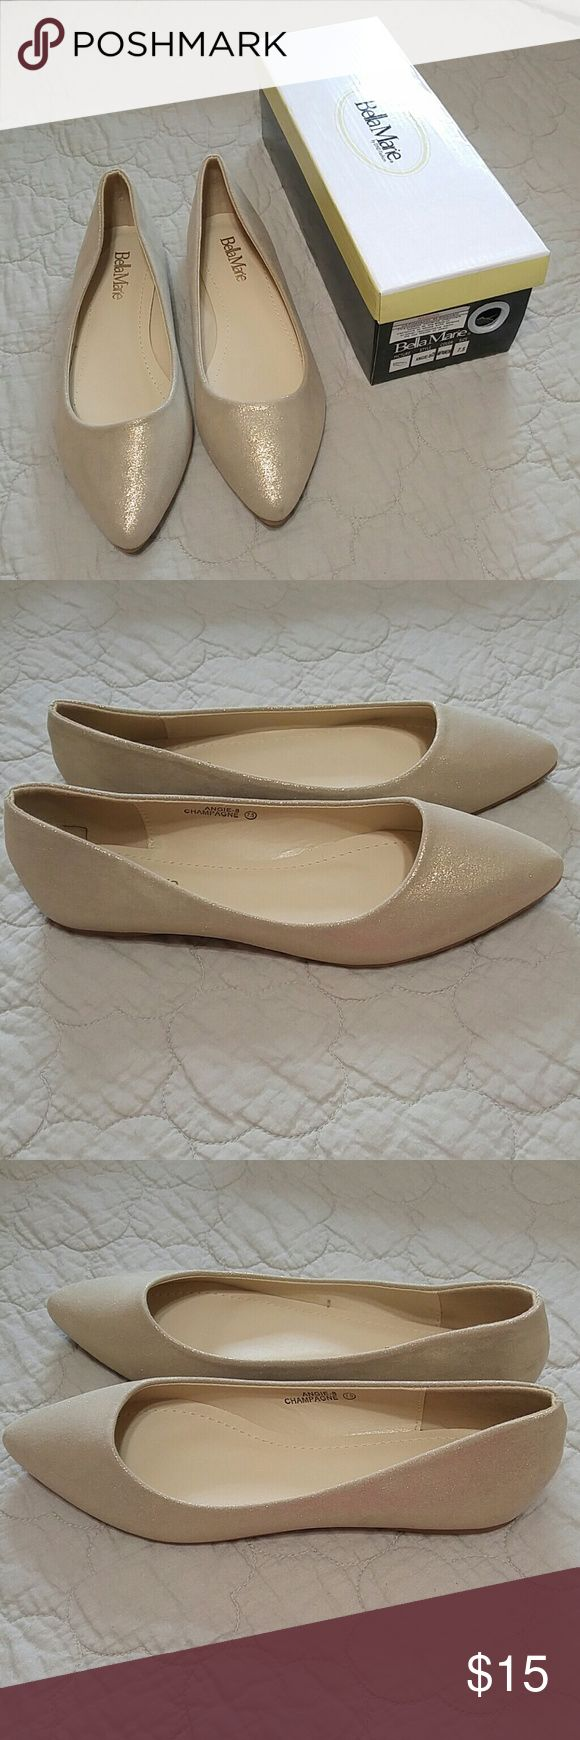 17 Best Ideas About Champagne Colored Shoes On Pinterest